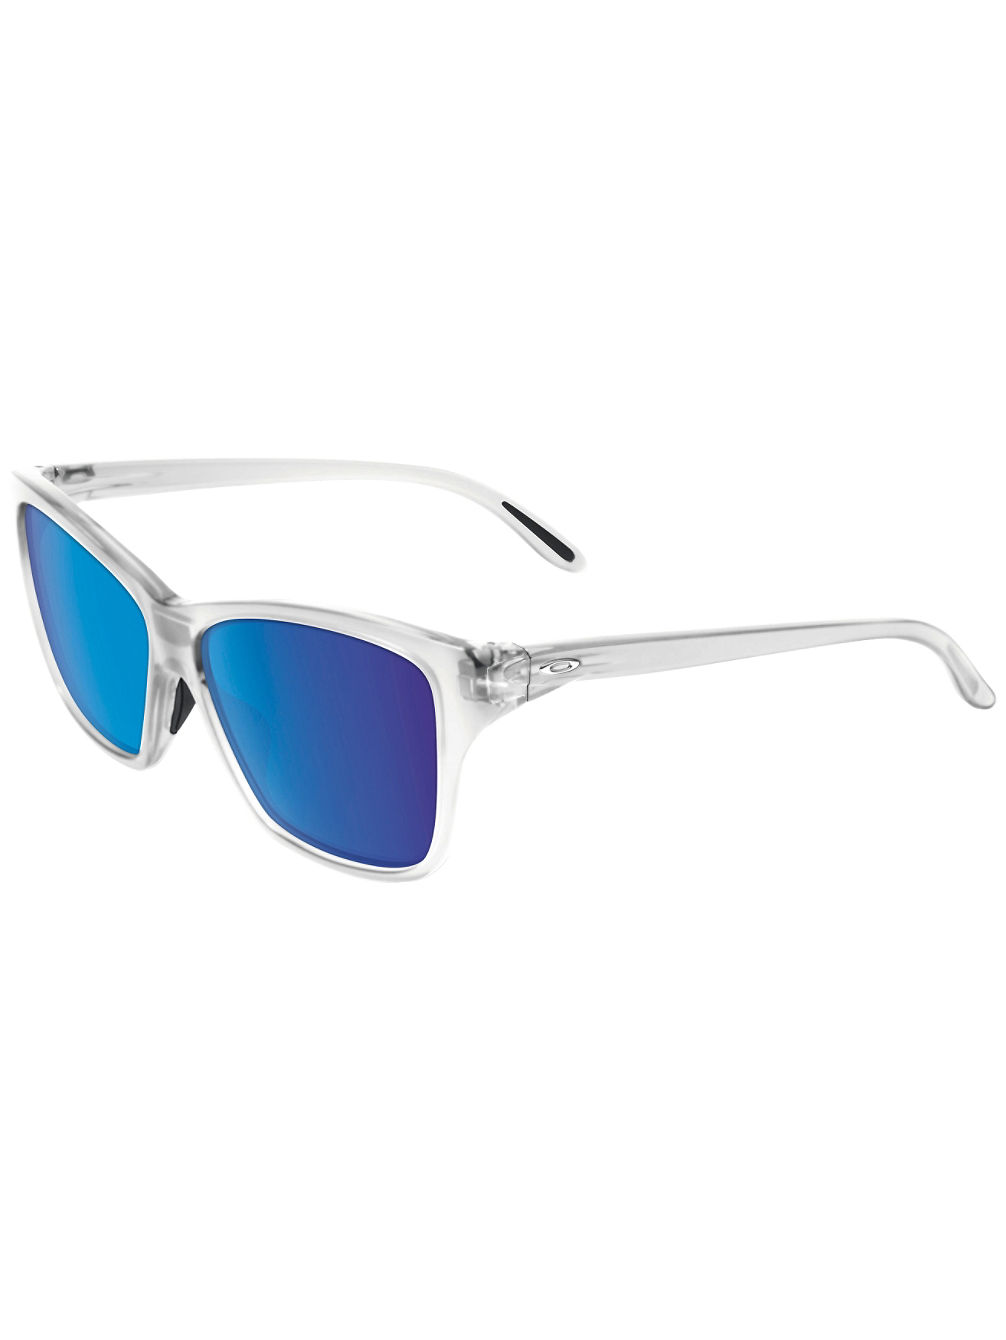 194a2e34b6 Buy Oakley Hold On Clear online at blue-tomato.com